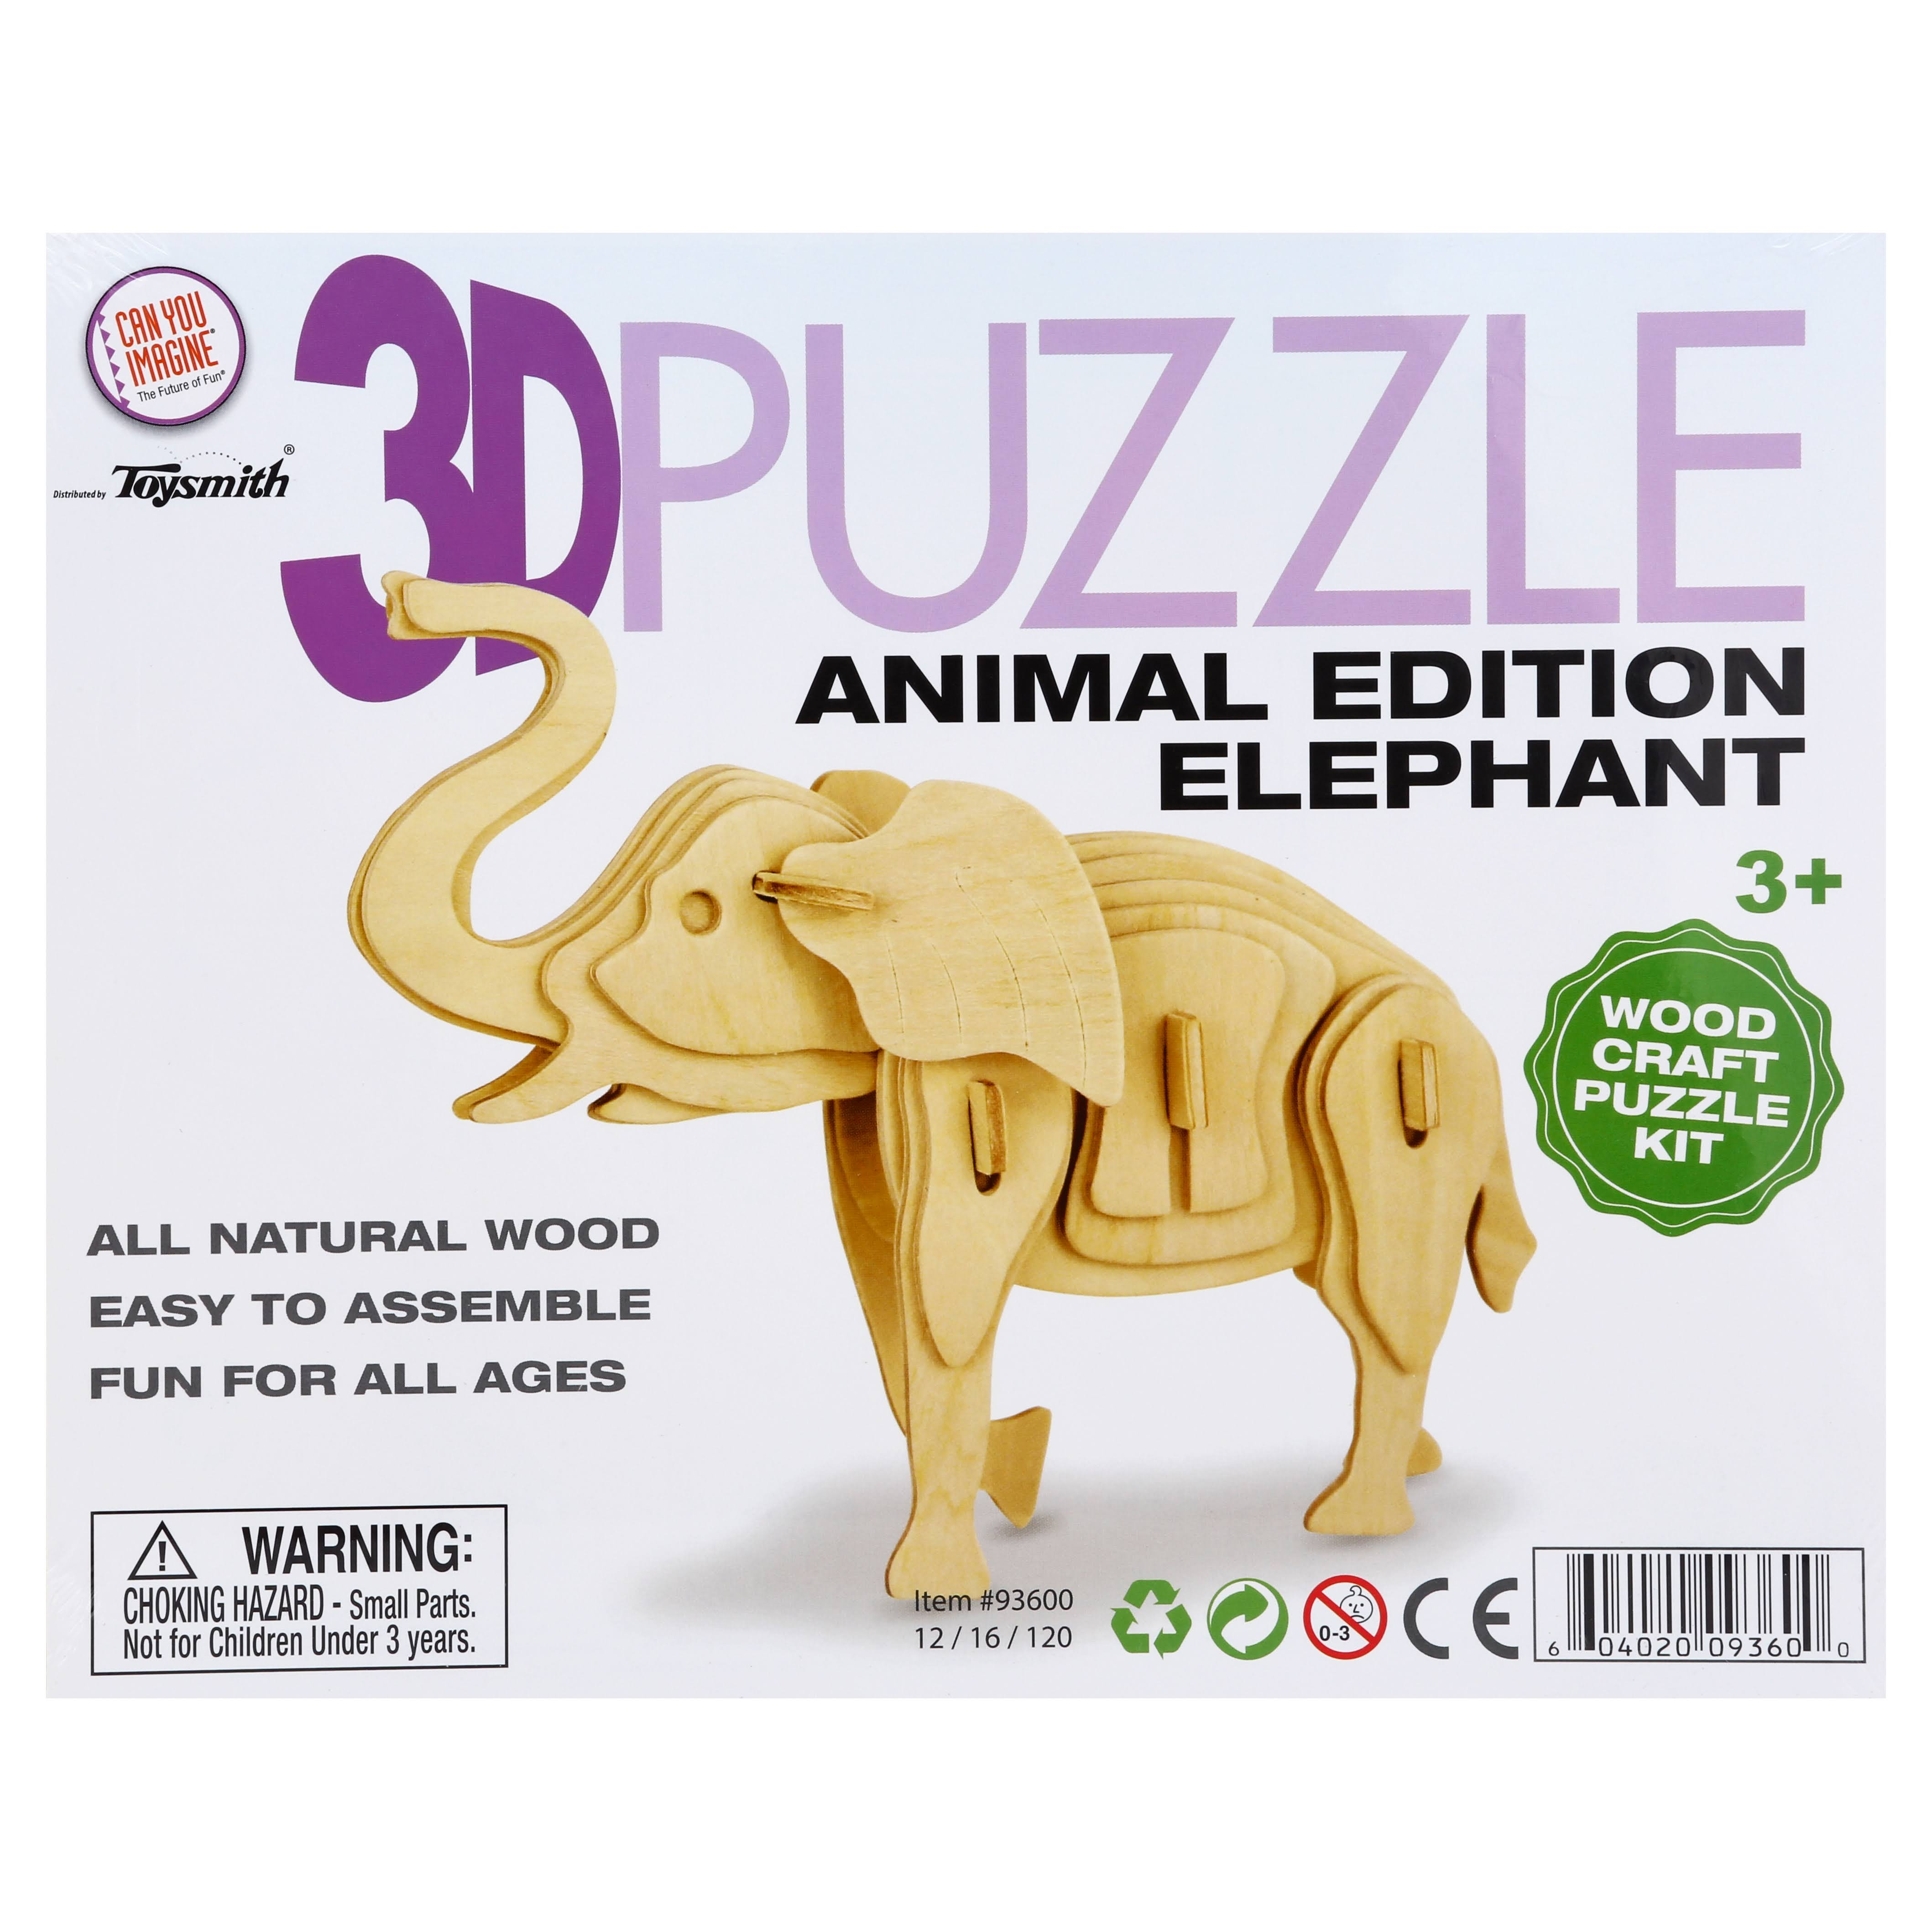 Nz Toys 3d Puzzle (Animals Edition) - Crocodile